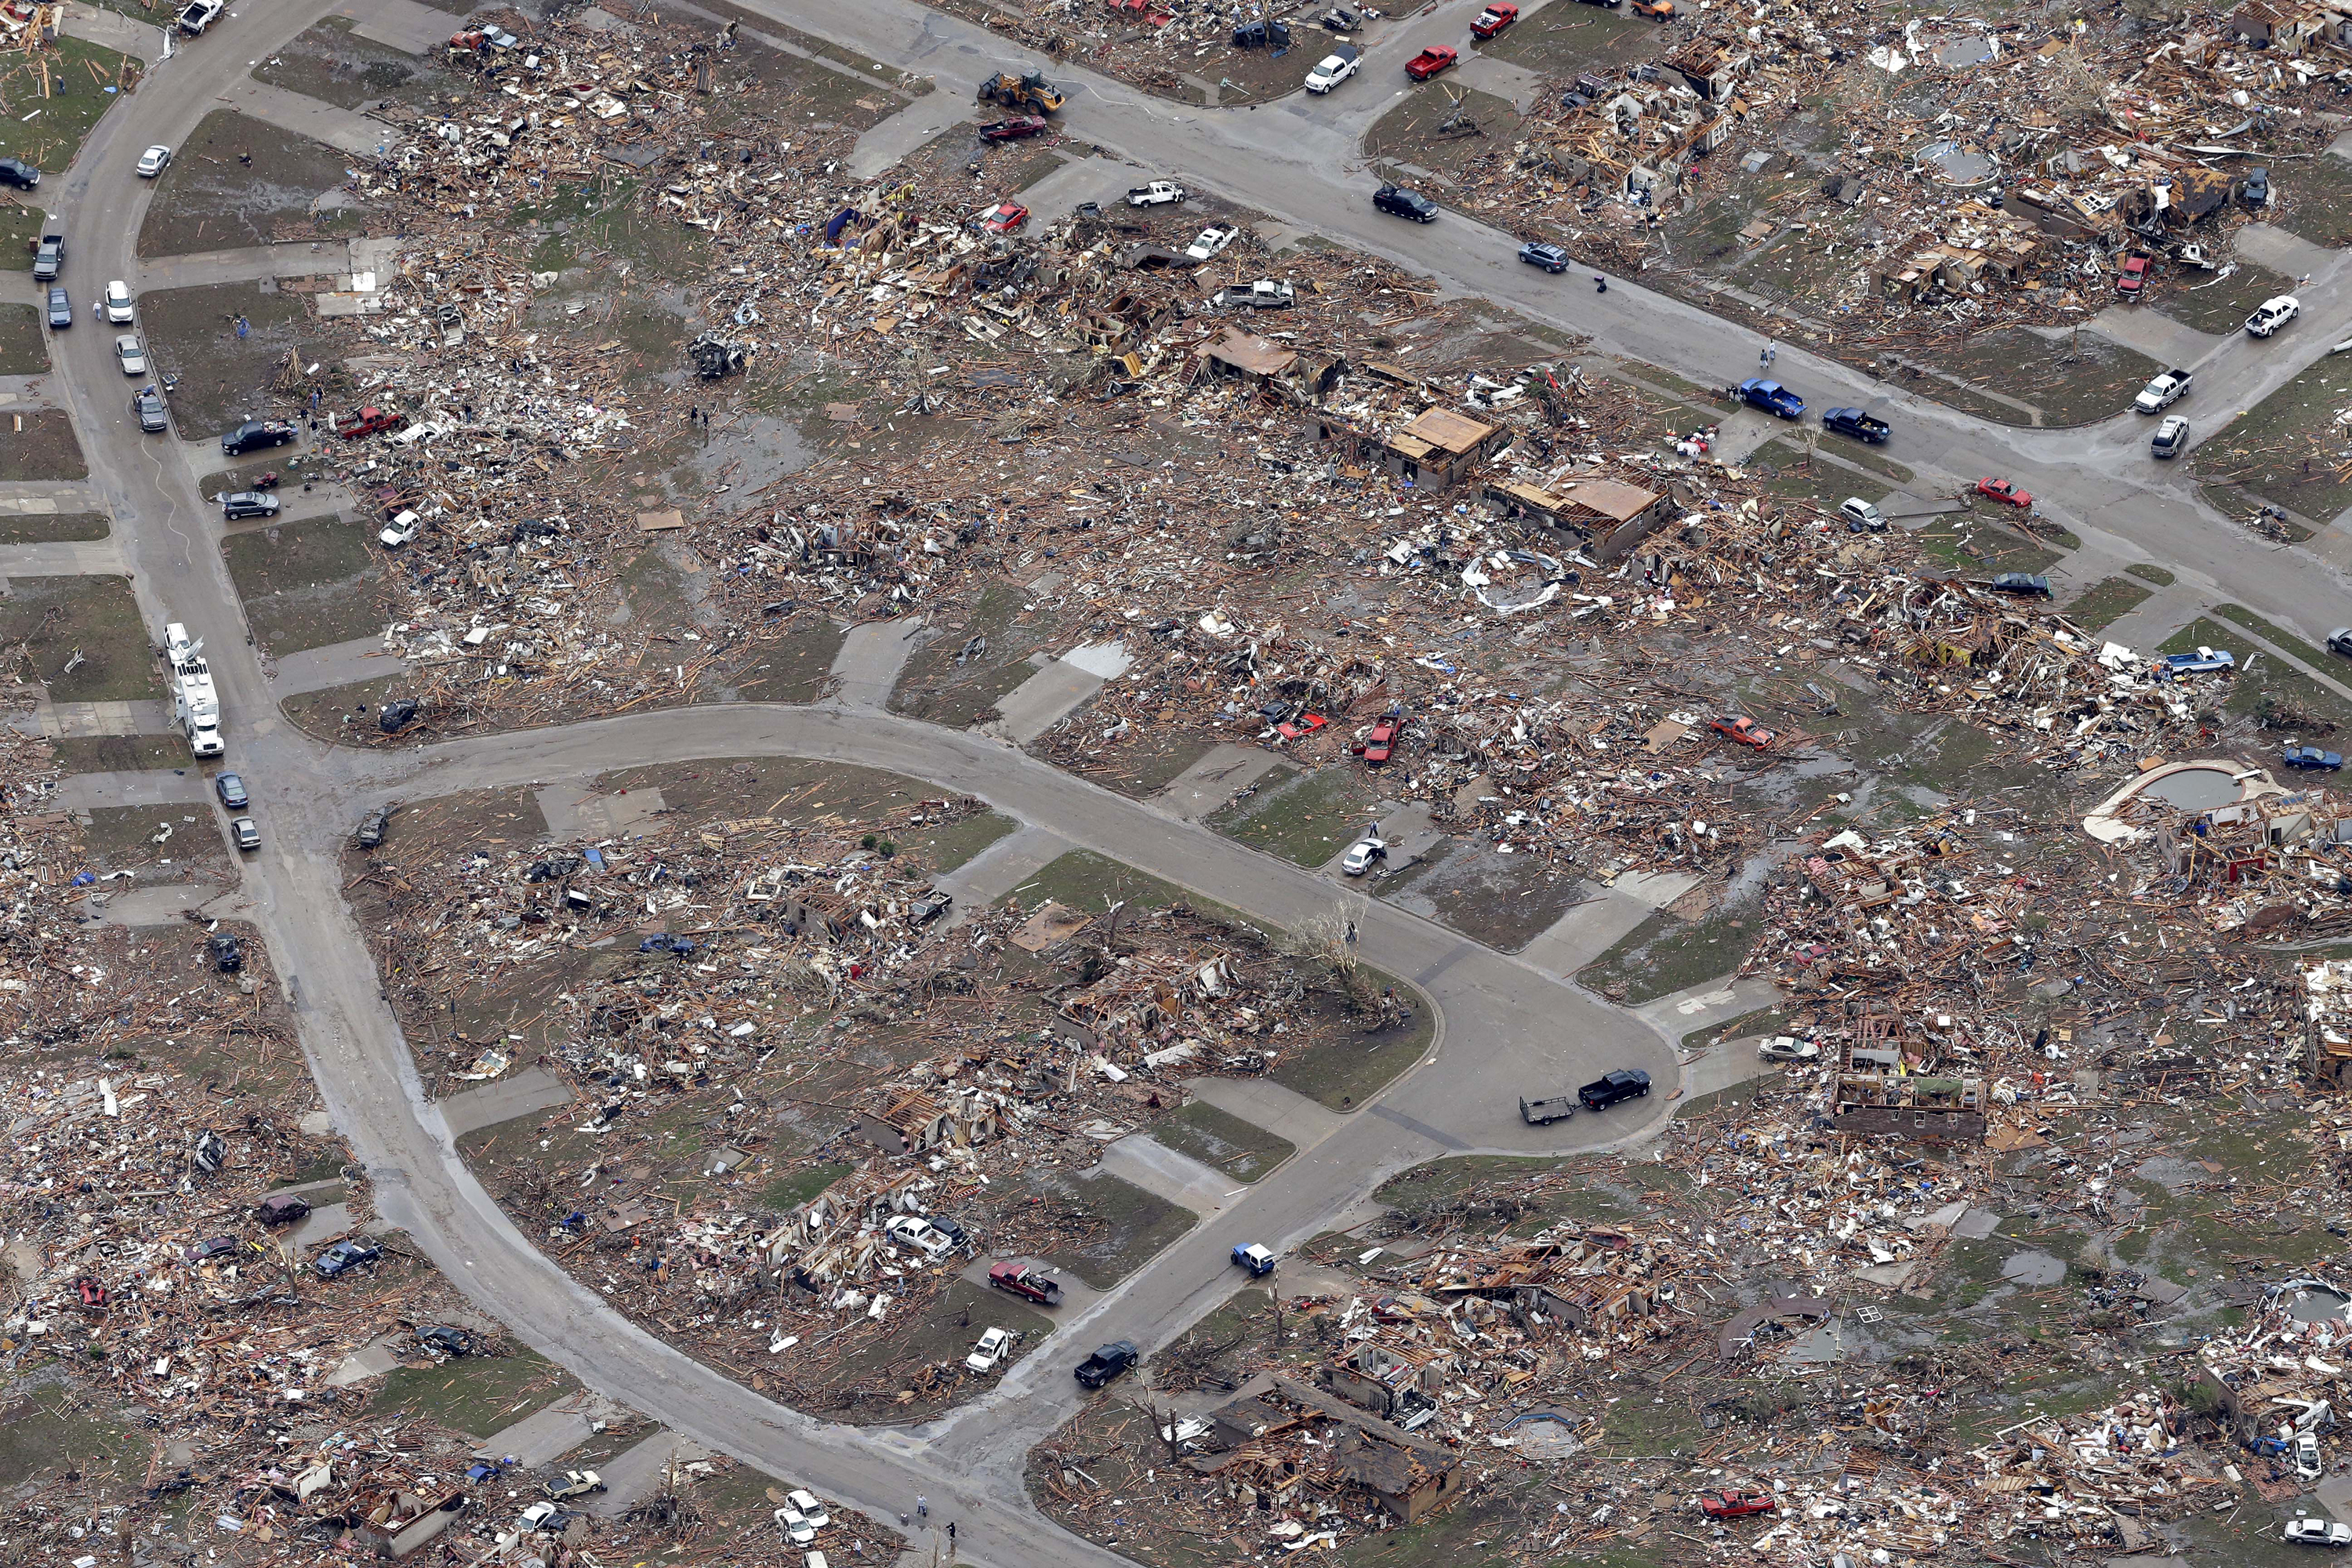 An aerial image taken Tuesday shows an entire neighborhood destroyed by Monday's tornado in Moore.